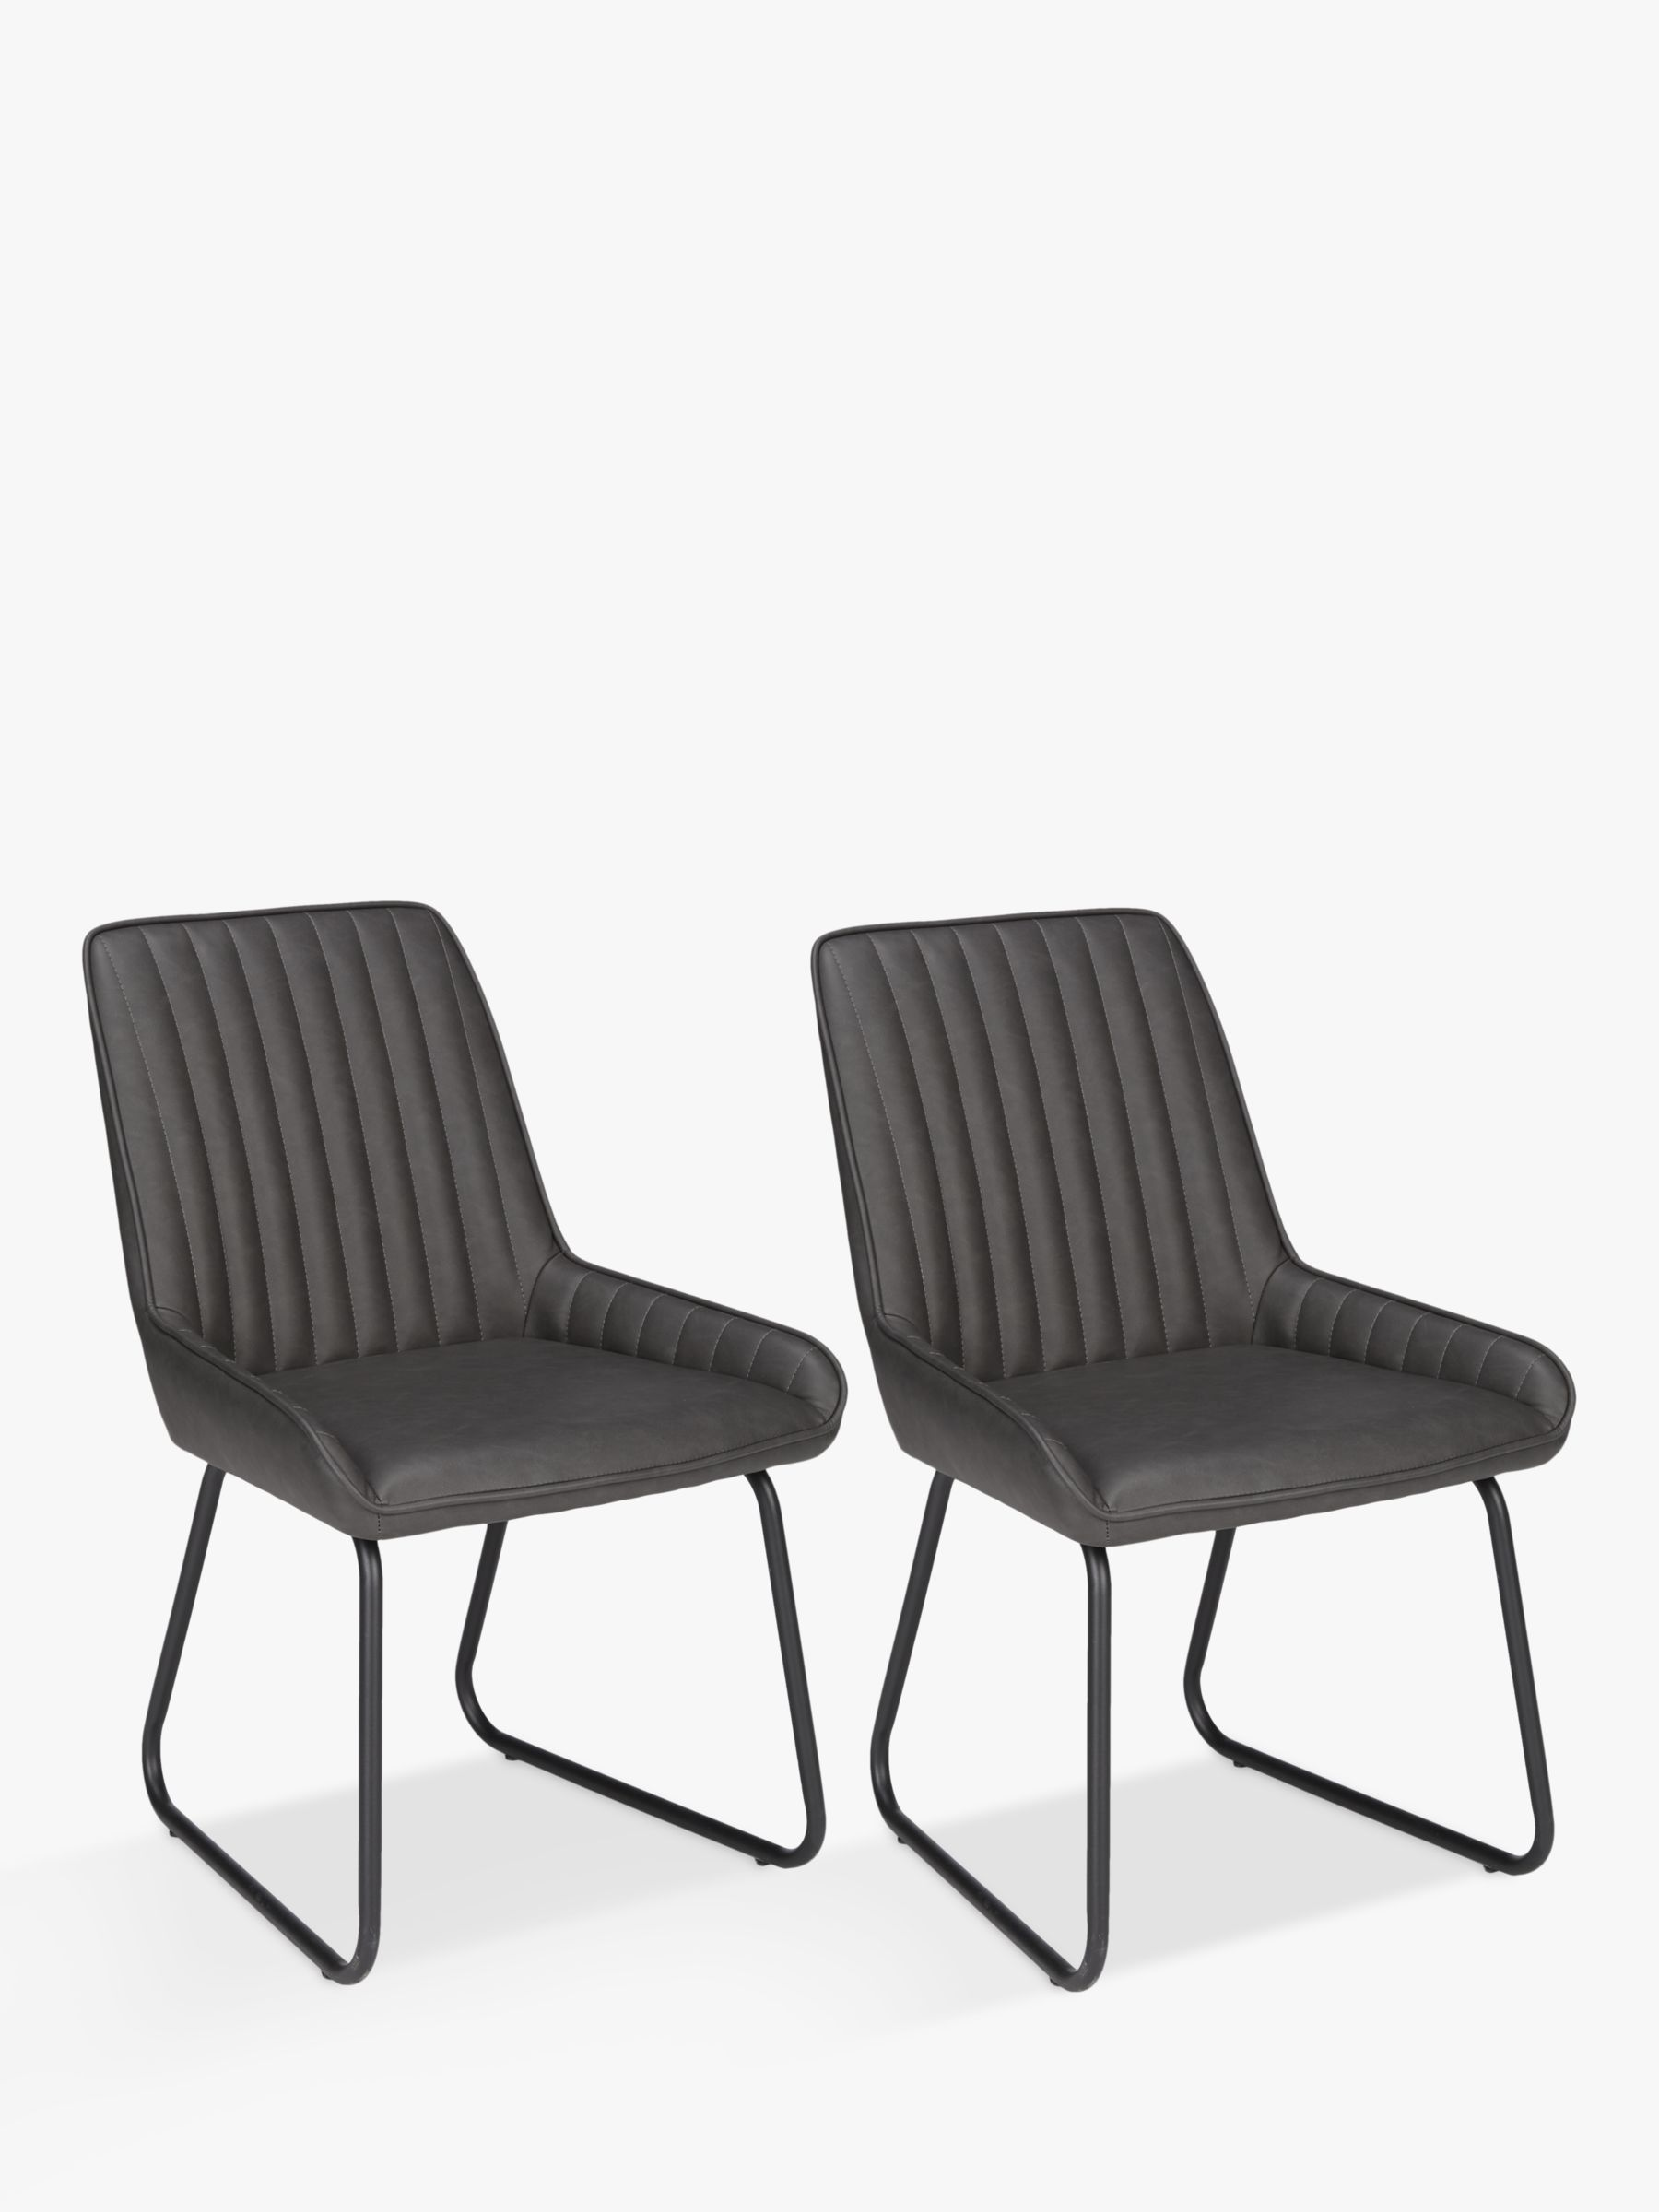 John Lewis & Partners Brooks Side Dining Chairs, Set of 9, Charcoal